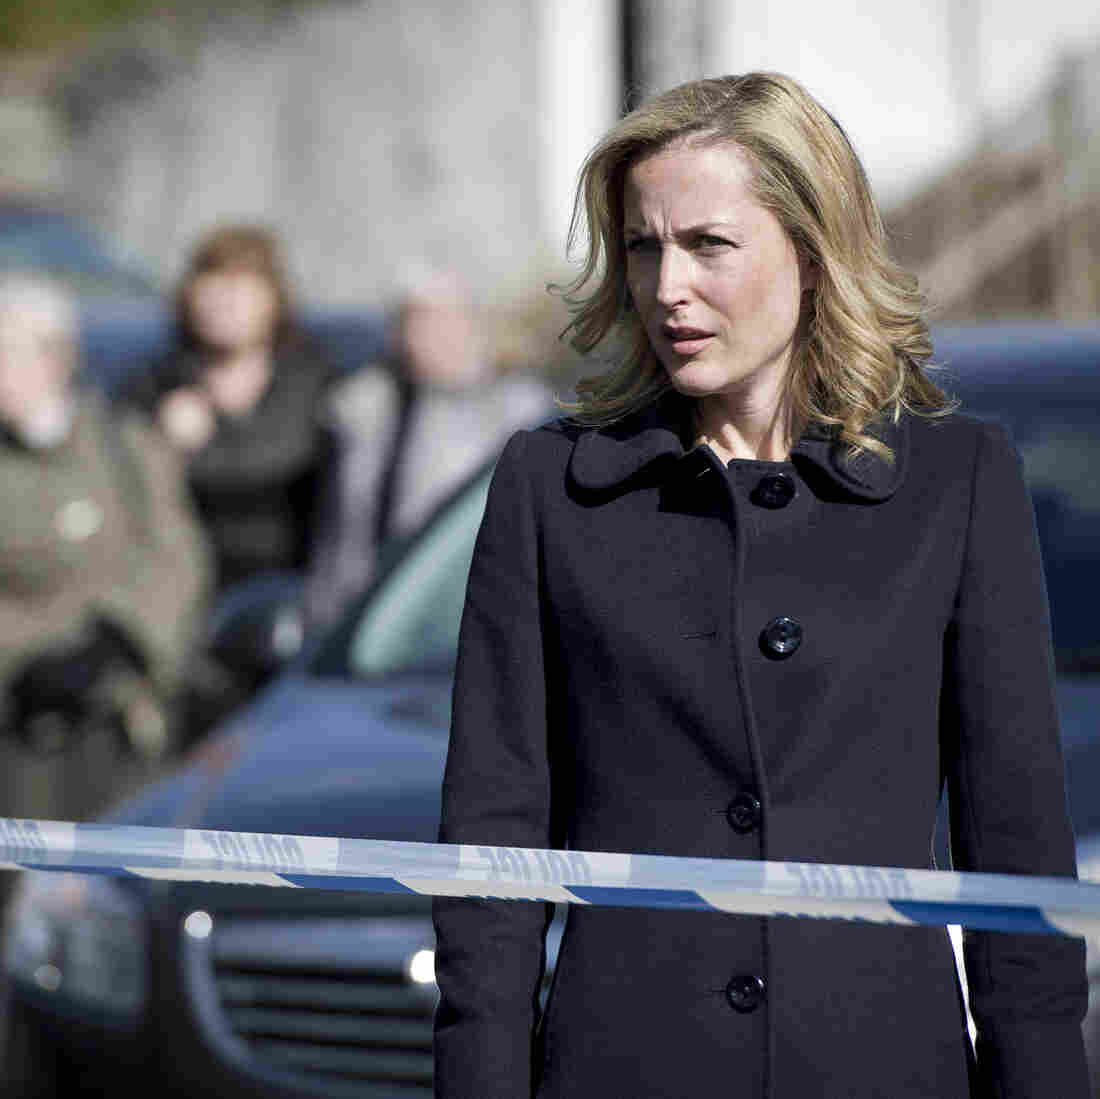 Gillian Anderson On 'The Fall' And Getting Arrested In High School